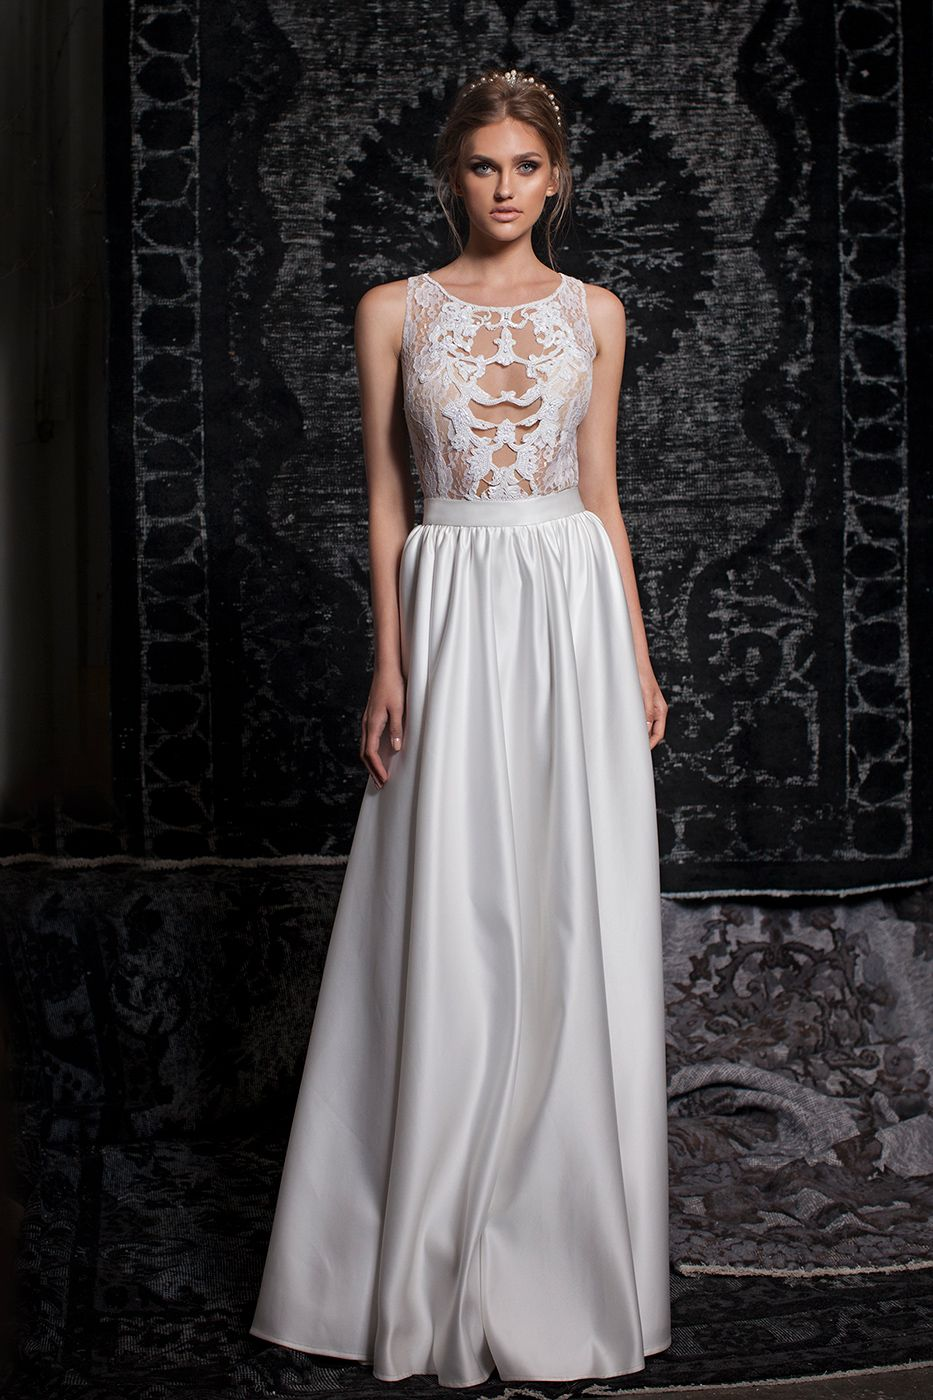 persy   Shirel   wedding dresses   Pinterest   Bohemian, Gowns and ...